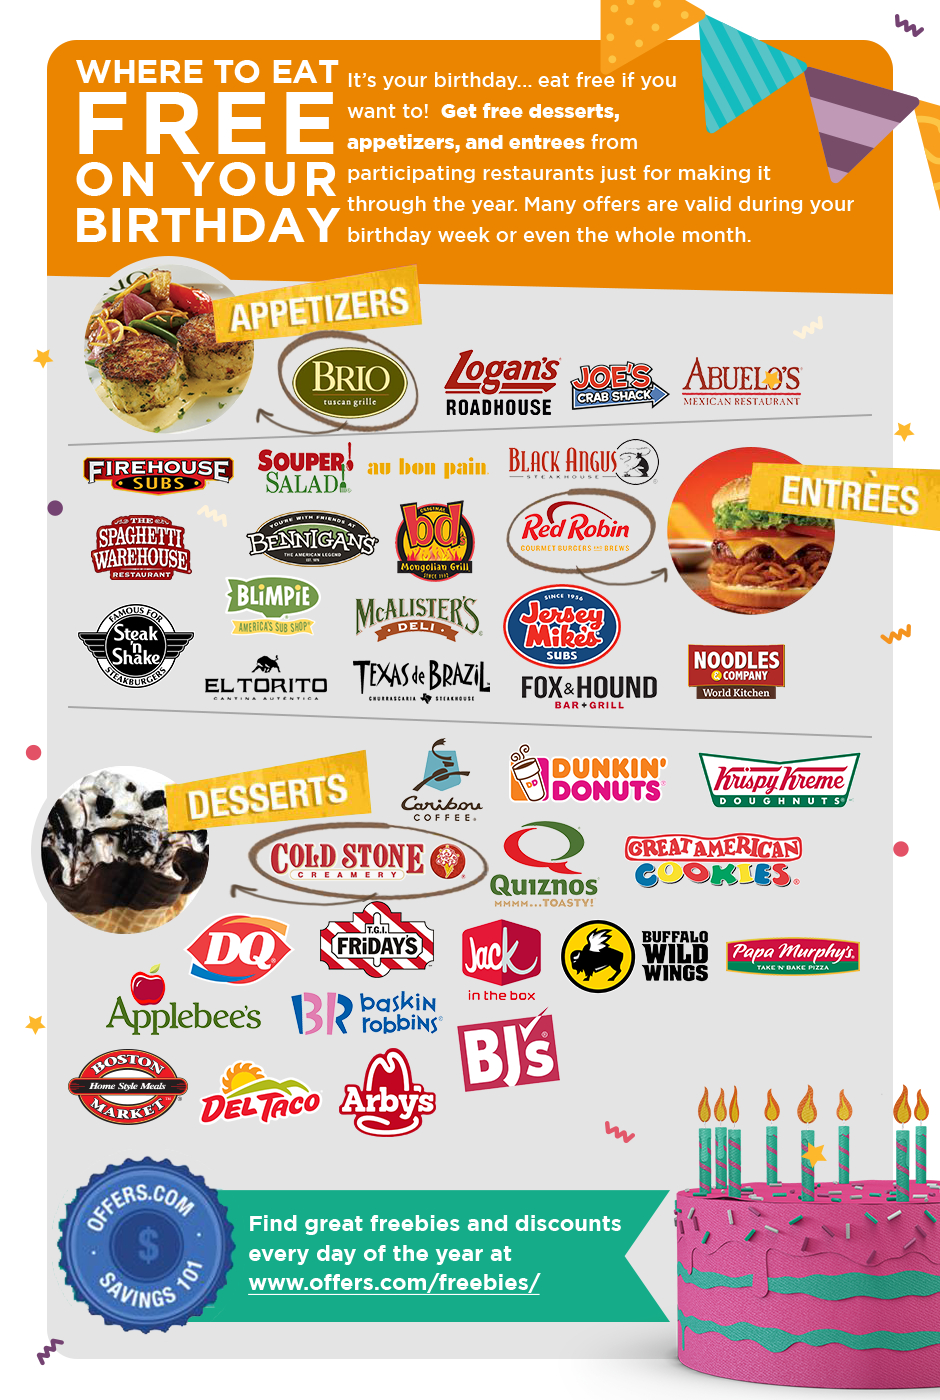 Free Birthday Meals 2019 - Restaurant W/ Free Food On Your Birthday - Texas Roadhouse Free Appetizer Printable Coupon 2015